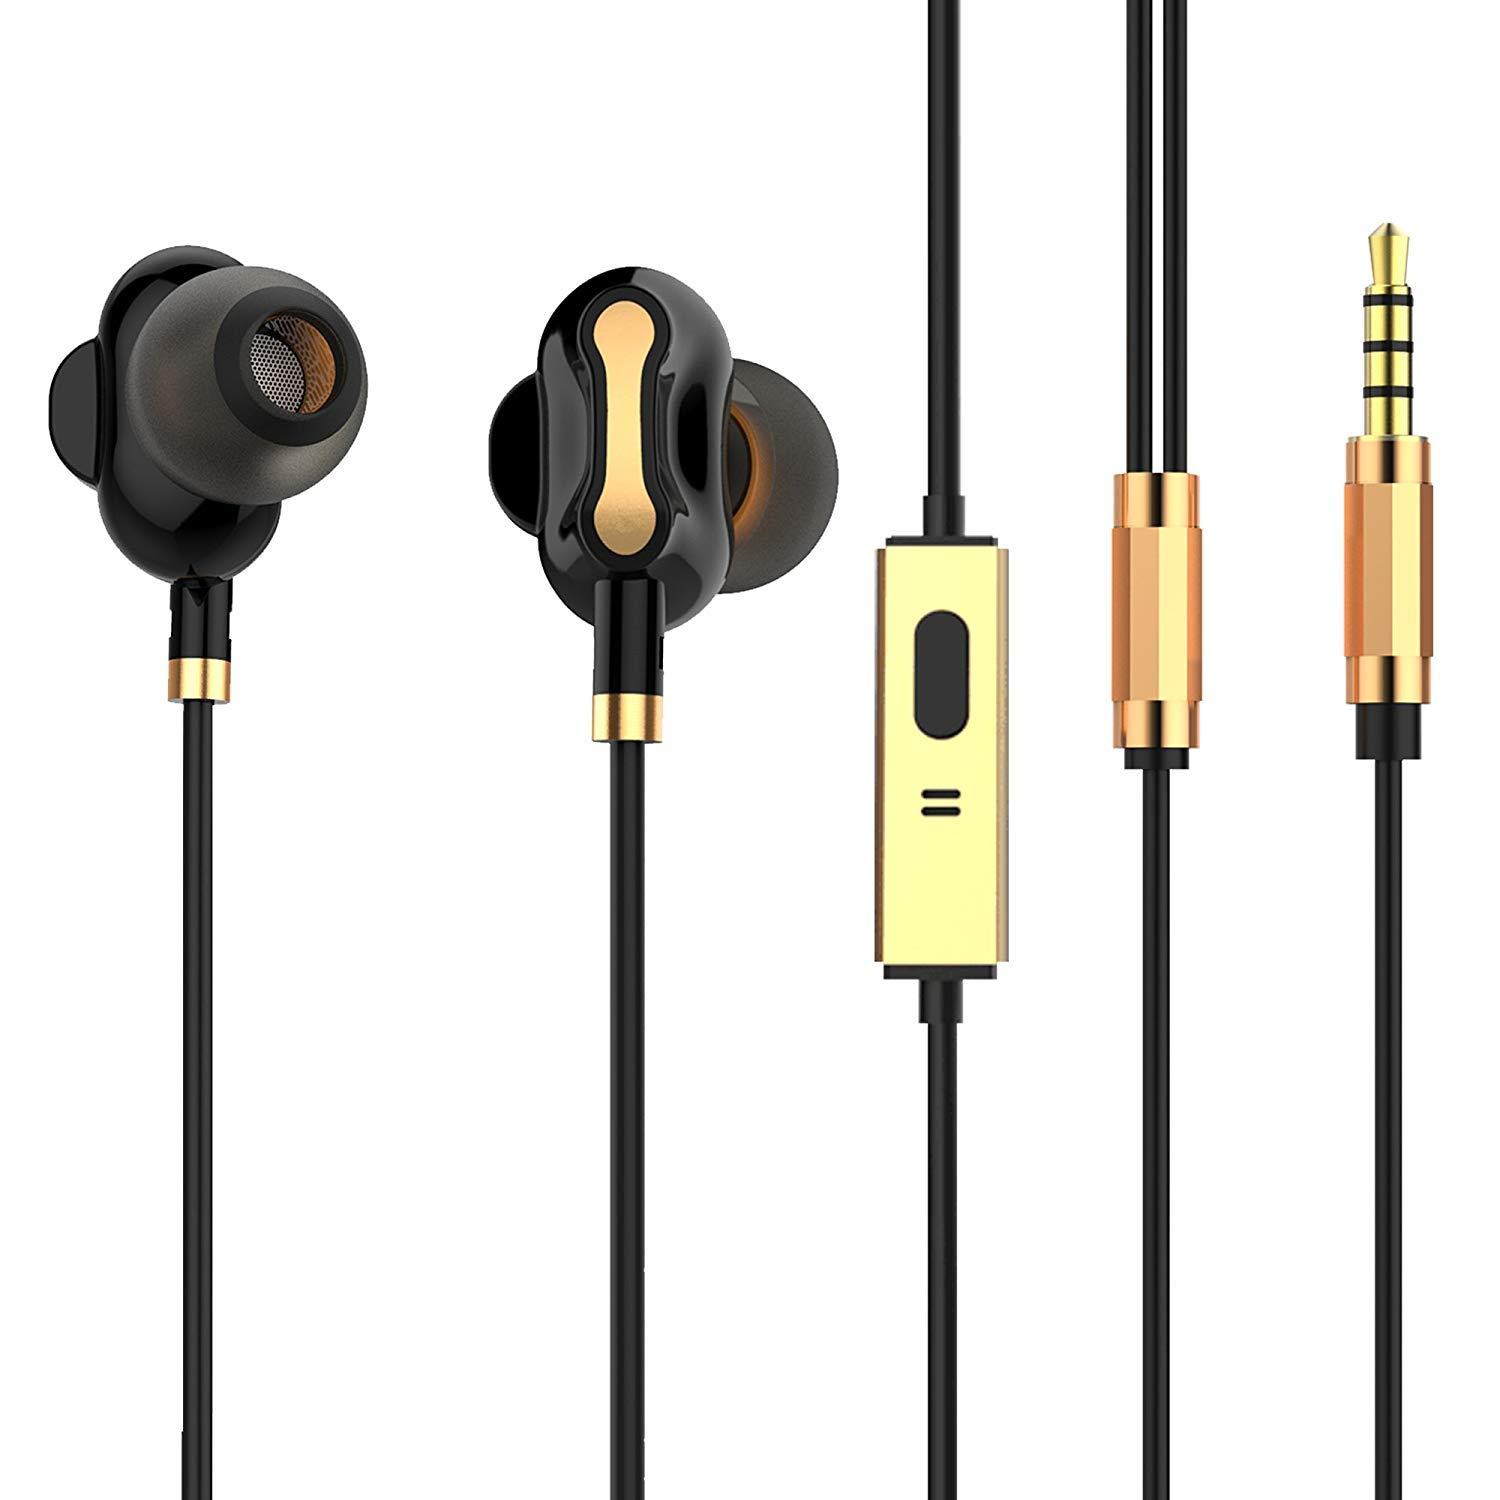 Tagg Soundgear-500 Dual Driver In-Ear Headphones With